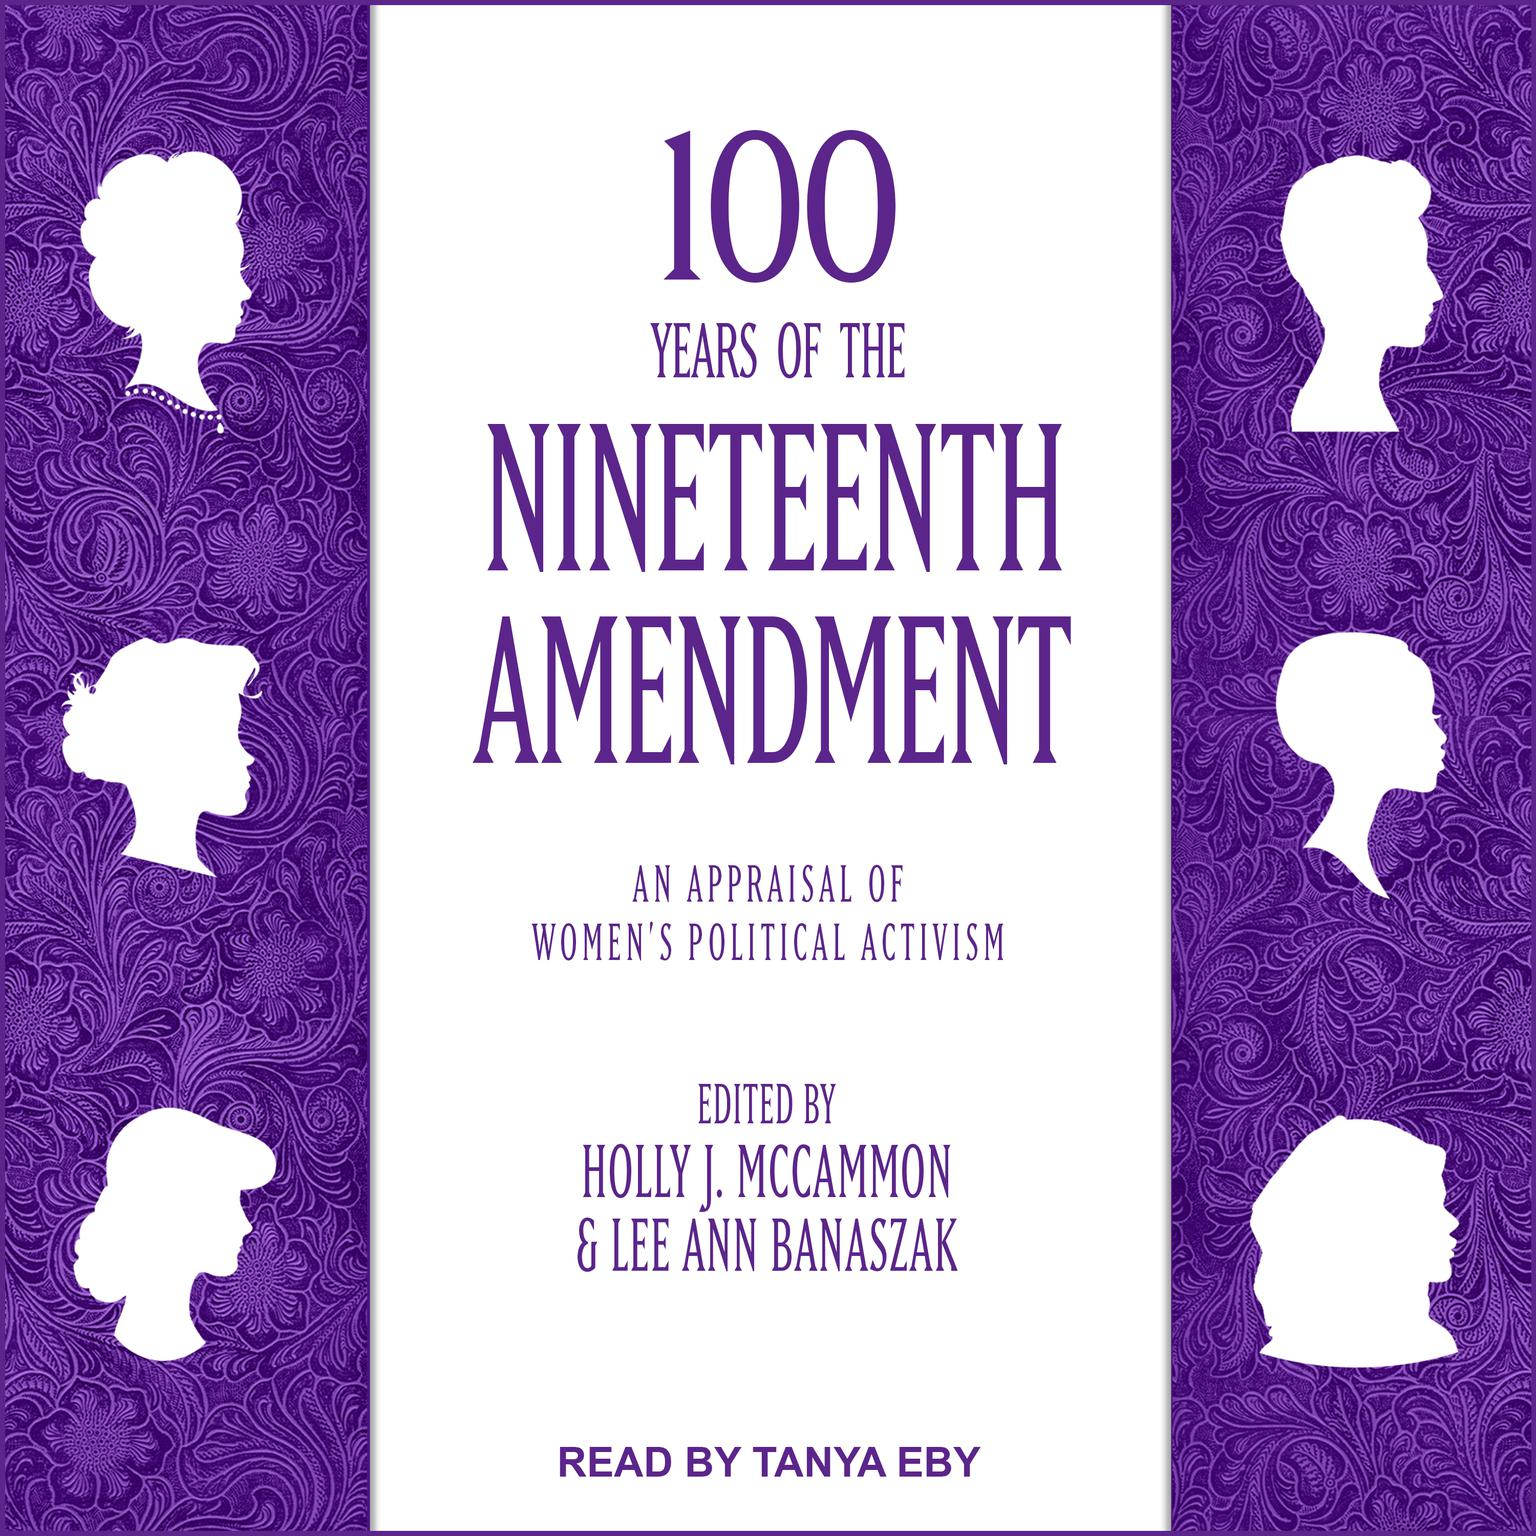 100 Years of the Nineteenth Amendment: An Appraisal of Womens Political Activism Audiobook, by Holly J. McCammon